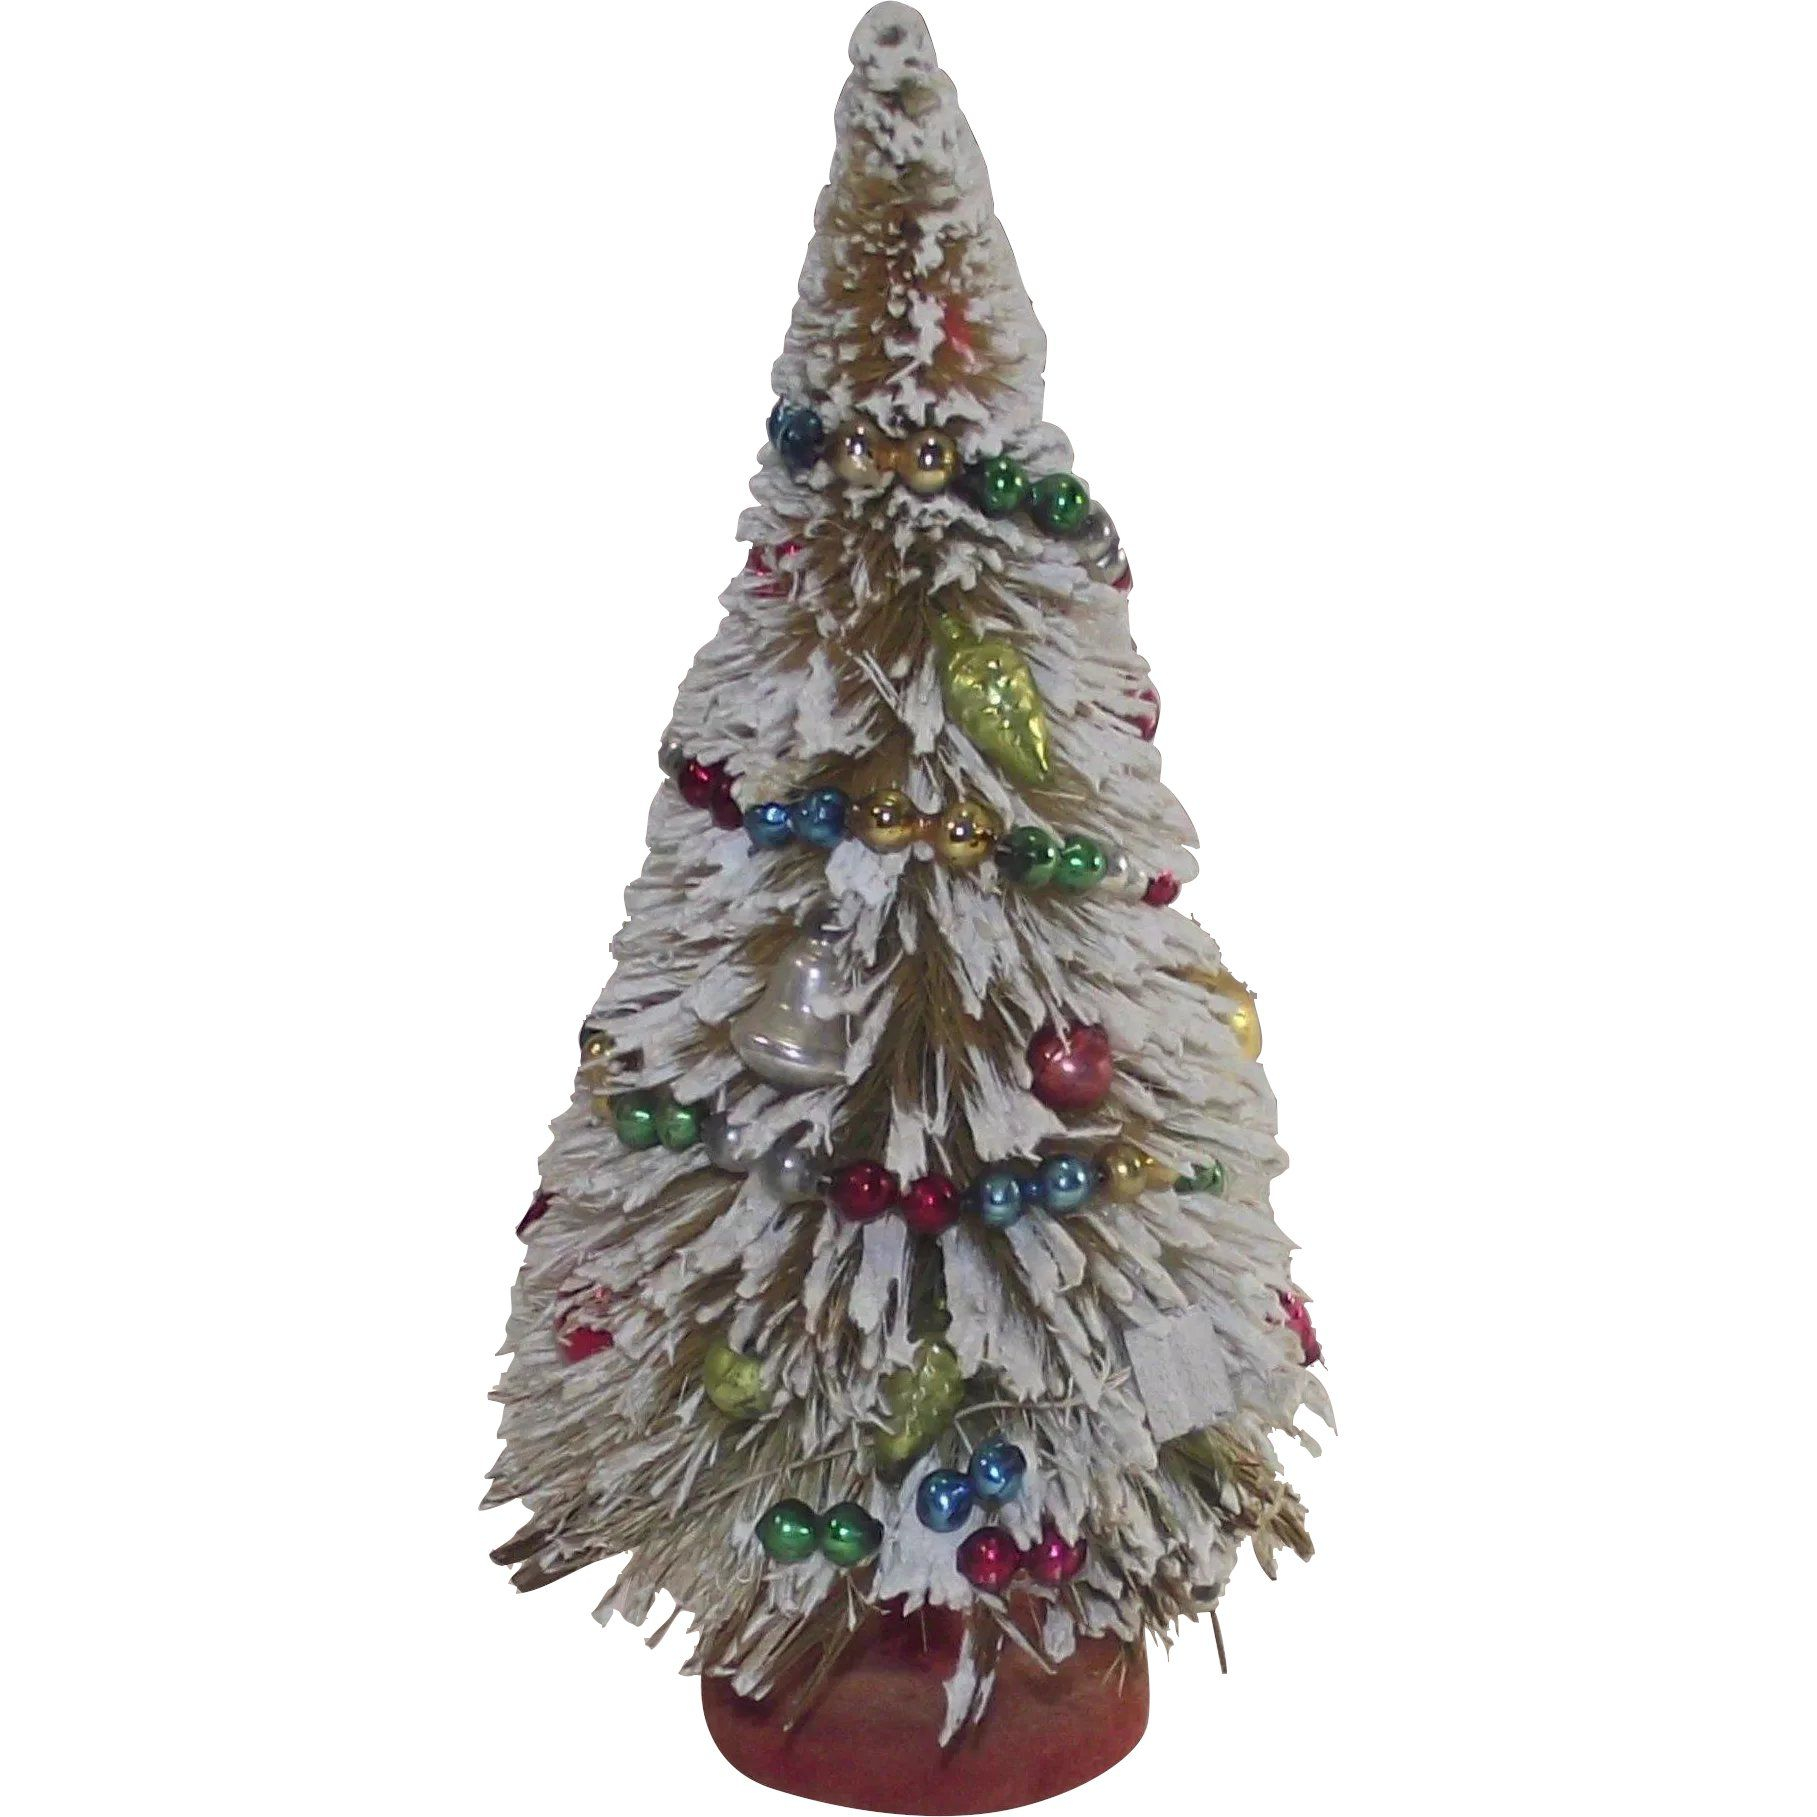 Flocked Bottle Brush Tree With Glass Garland And Ornaments 1950s Vintage Christmas Ornaments 1950s Vintage Christmas Ornaments Christmas Ornaments